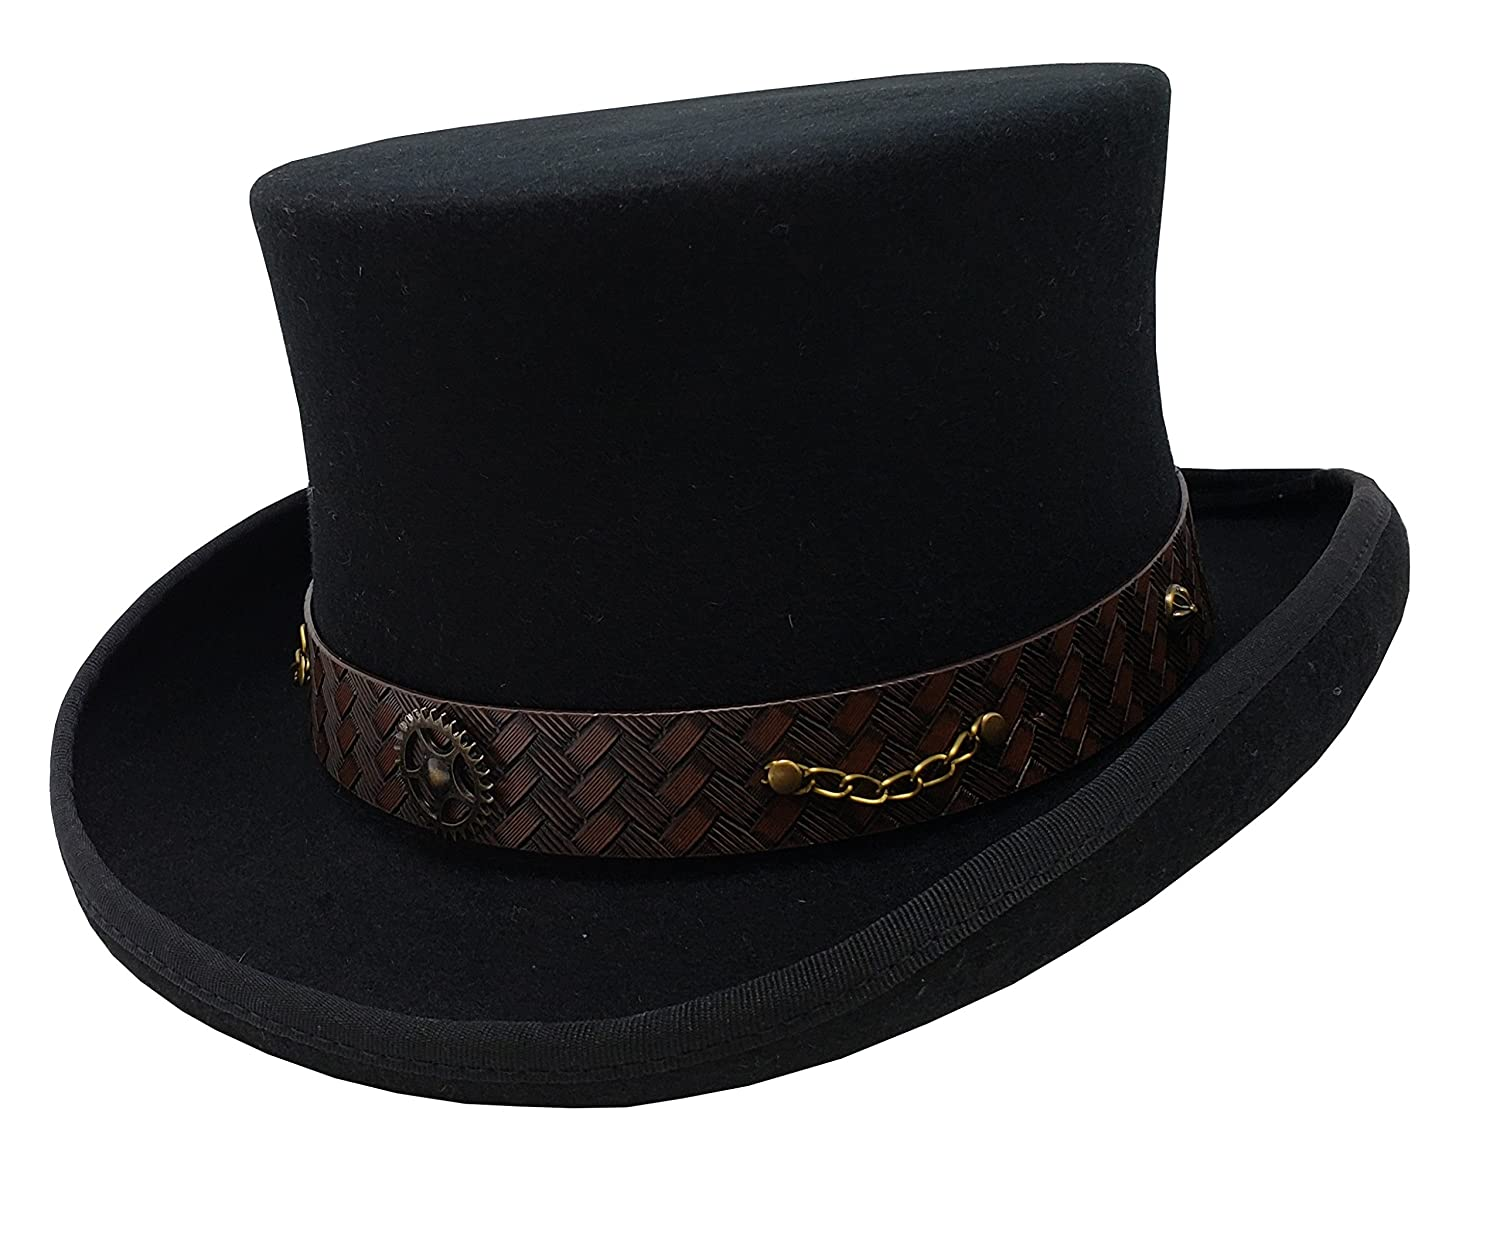 8b9343593e4bc Amazon.com  100% Wool Victorian Western Steampunk Costume Top Hat with  Leather Band and Chain Black  Clothing